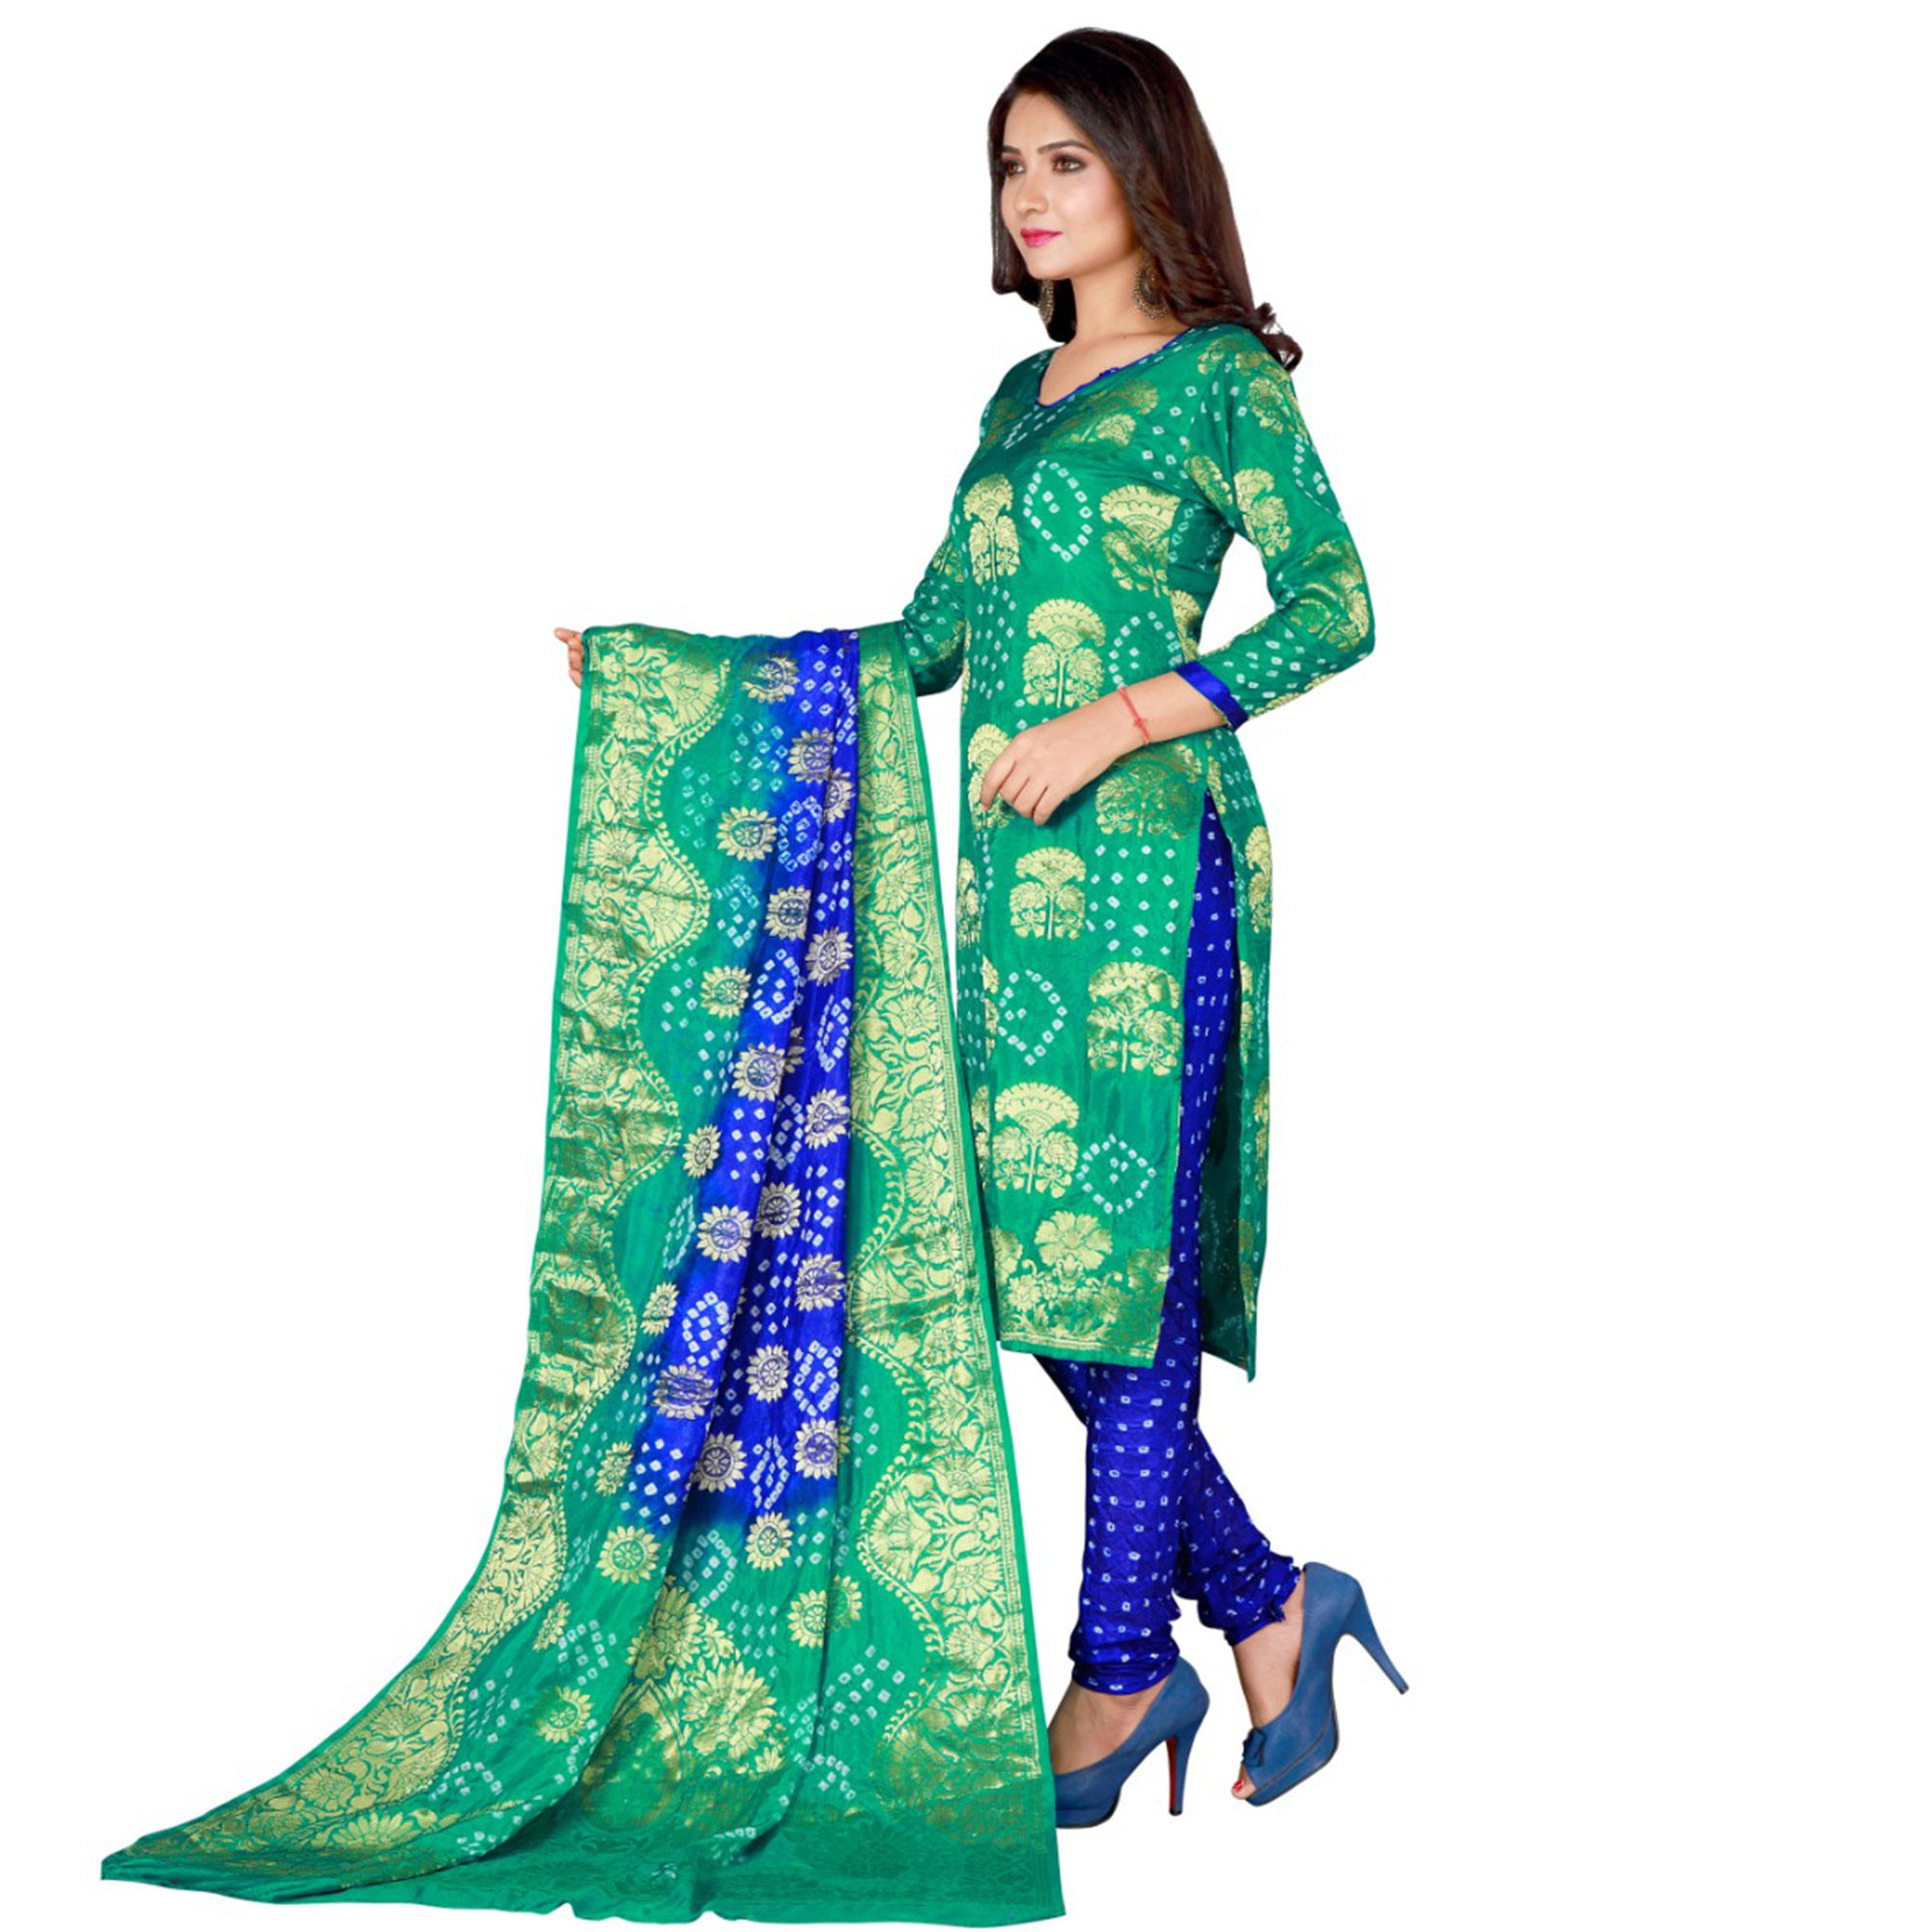 Bandhaniwala - Sea Green Colored Festive Wear Zari Butta Work Art Silk Dress Material